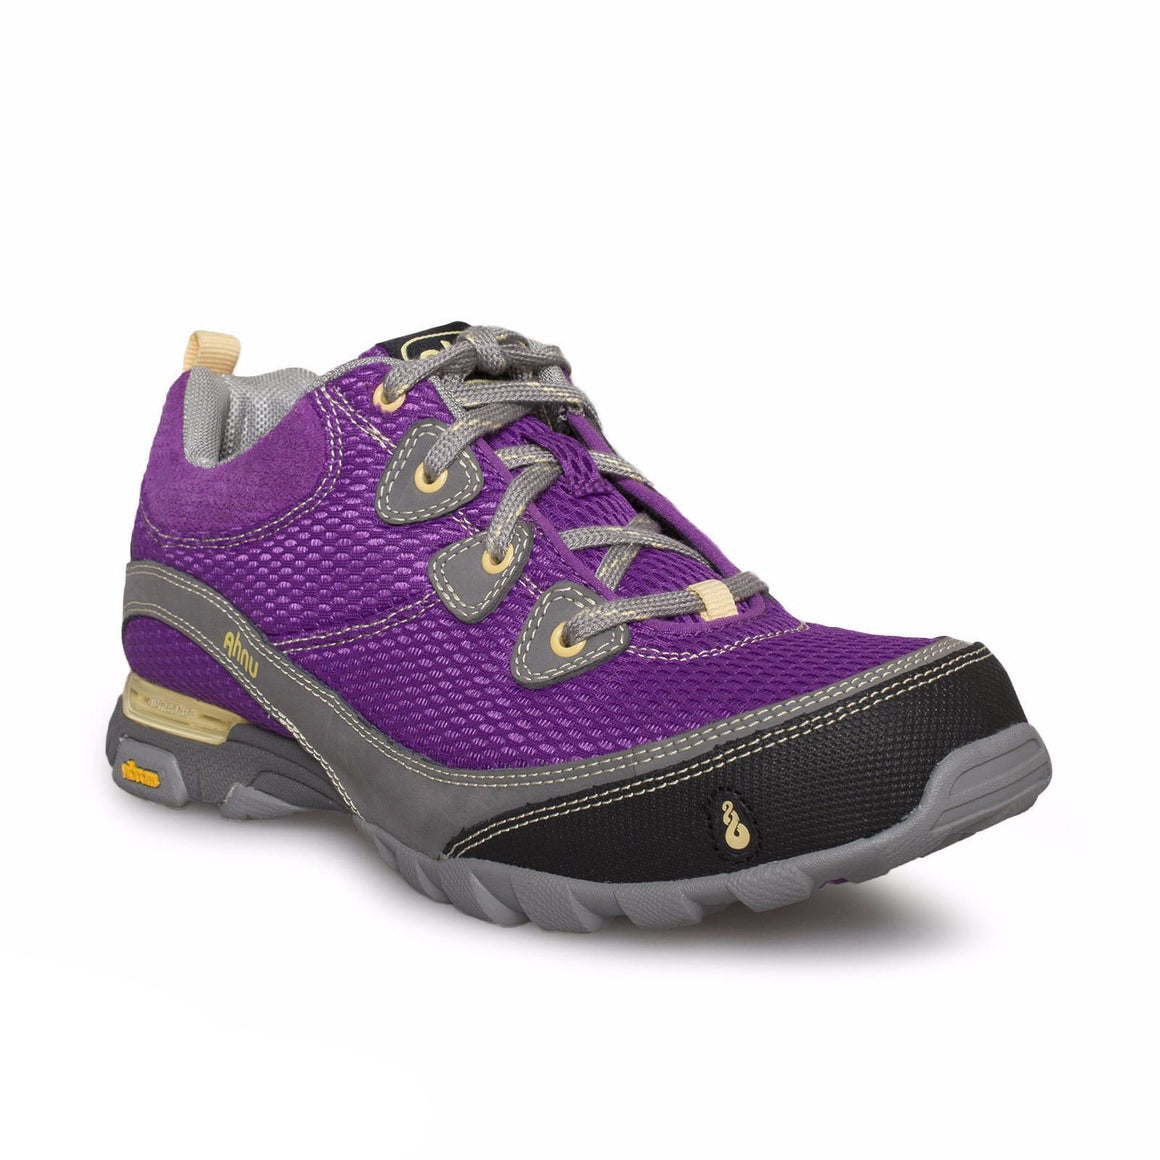 AHNU SUGARPINE AIR MESH DAHLIA HIKING BOOTS